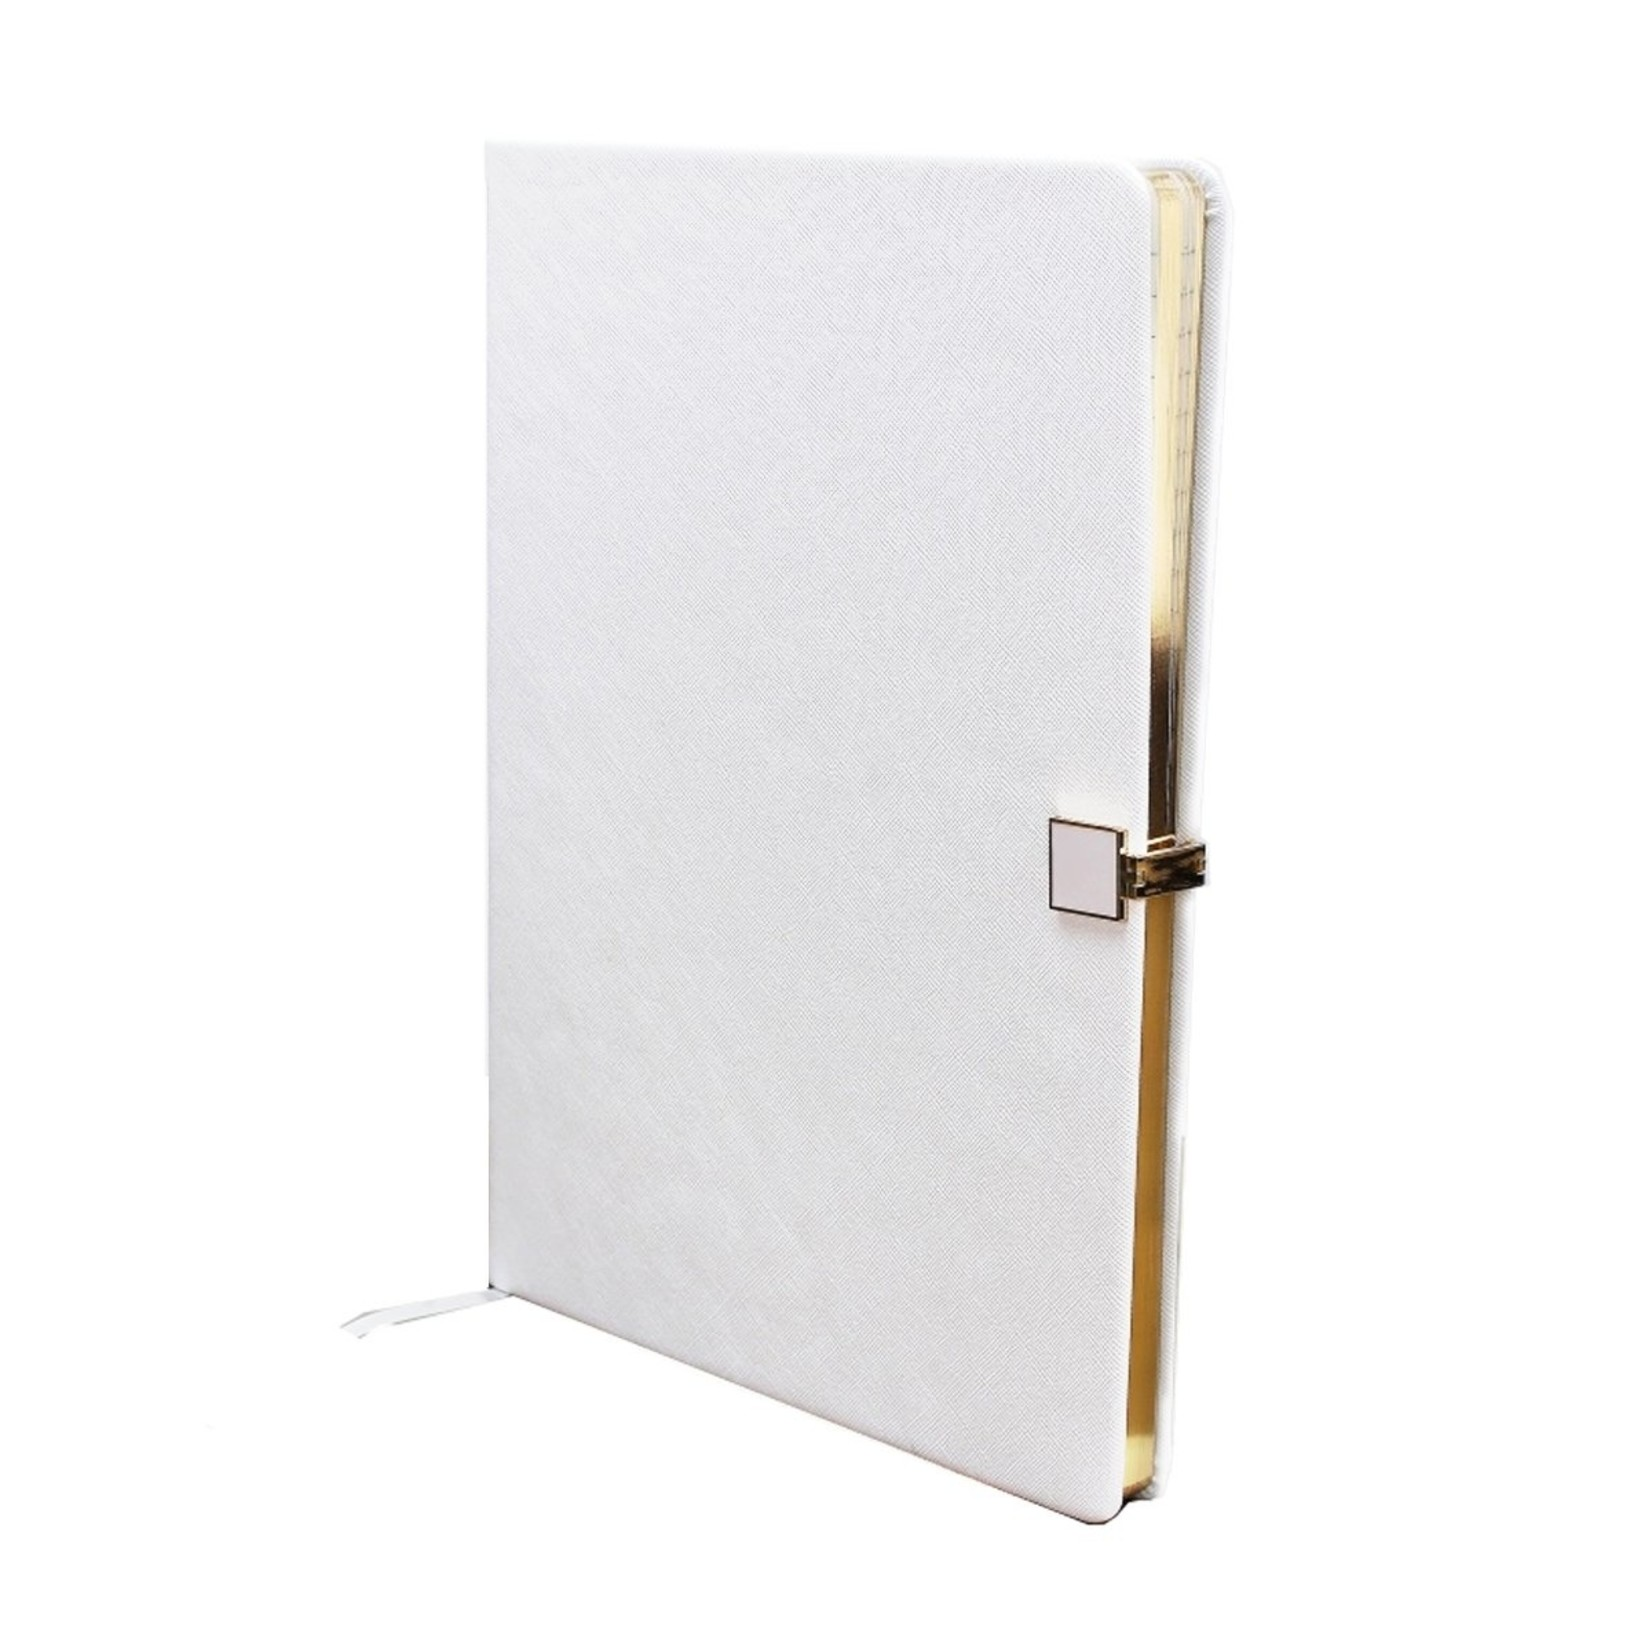 Addison Ross White & Gold A4 Notebook